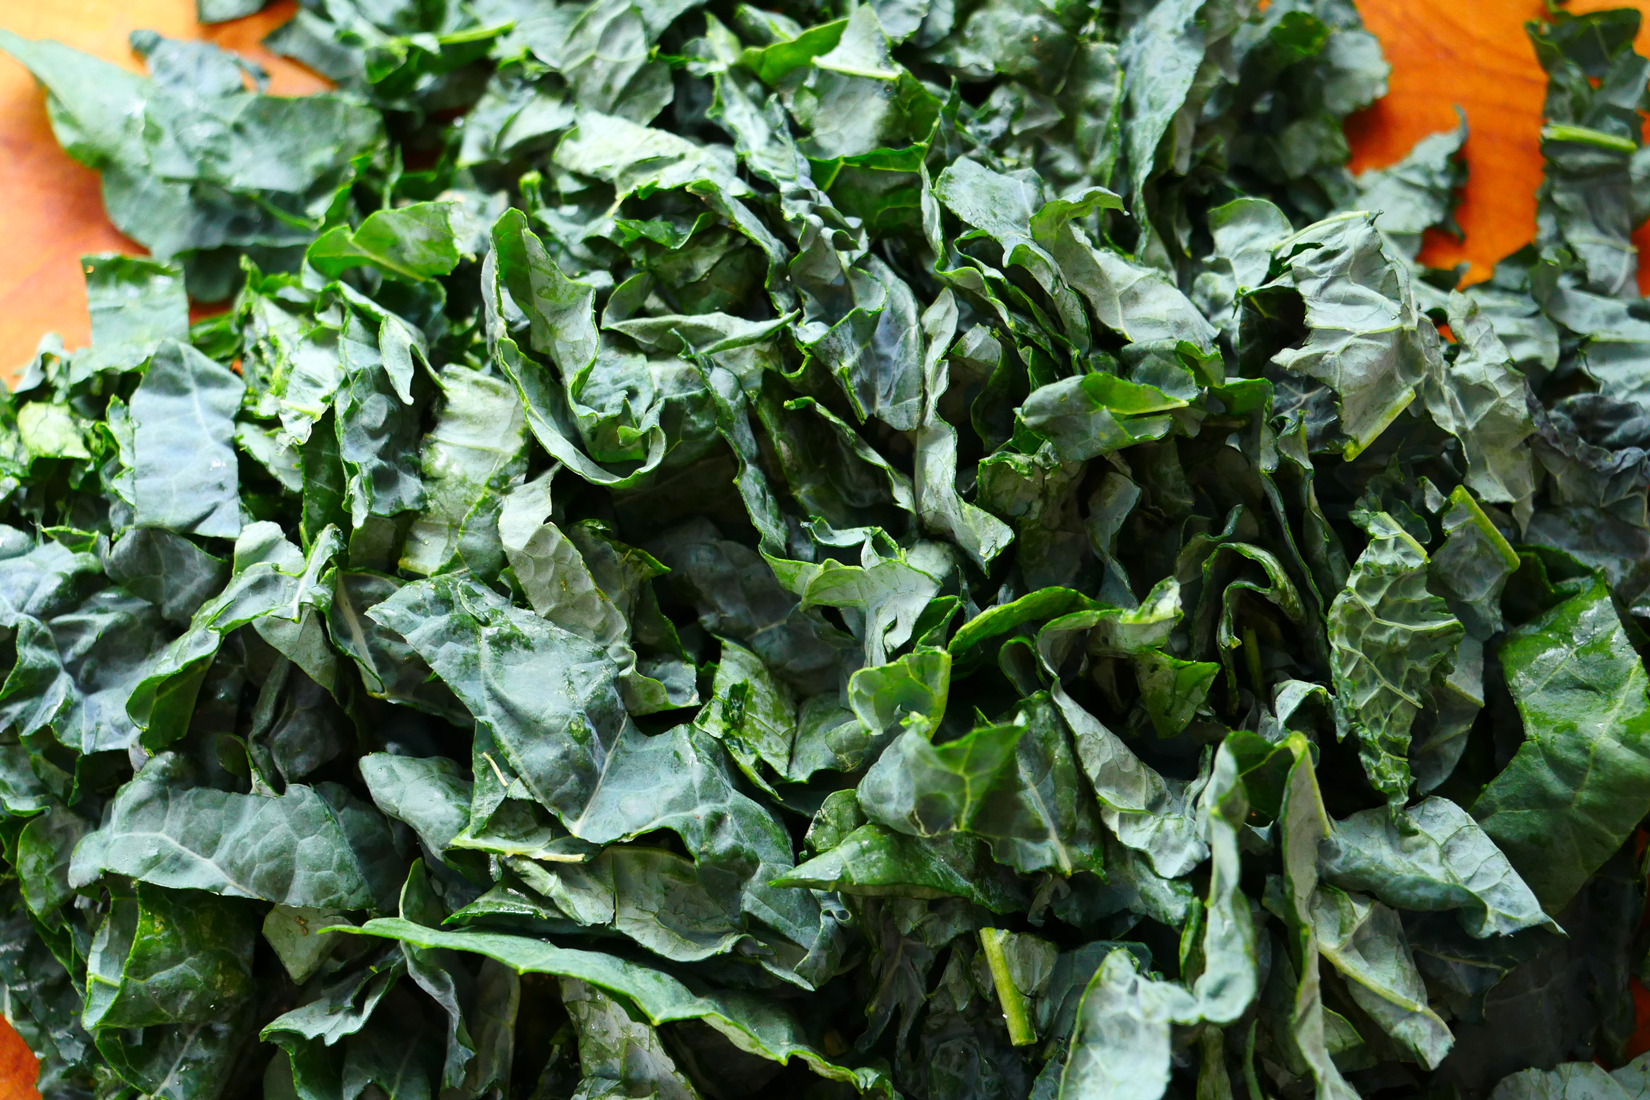 I used one bunch of lacinato kale which amounted to three cups. You could also use broccoli rabe, or collards. I pulled the greens off the stem and chopped them into bite sized pieces. (If you're not sure of the size, imagine how it will sit on your soup spoon and chop accordingly – I don't love soup-sloopy greens.) Once chopped to your satisfaction, set your greens aside.